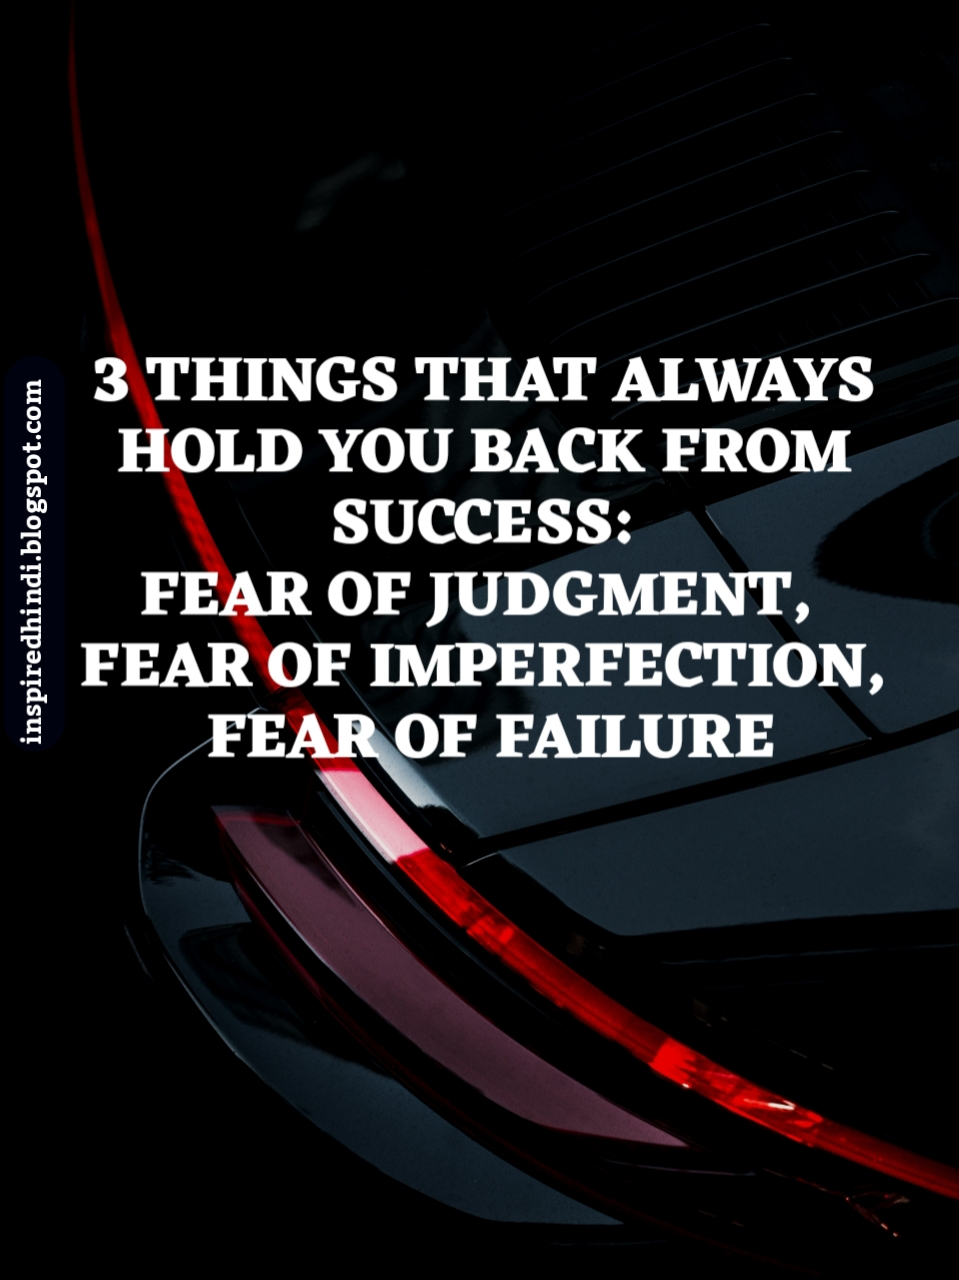 THREE THINGS THAT ALWAYS HOLD YOU BACK FROM SUCCESS: FEAR OF FAILURE, FEAR OF JUDGEMENT, FEAR OF IMPERFECTION.